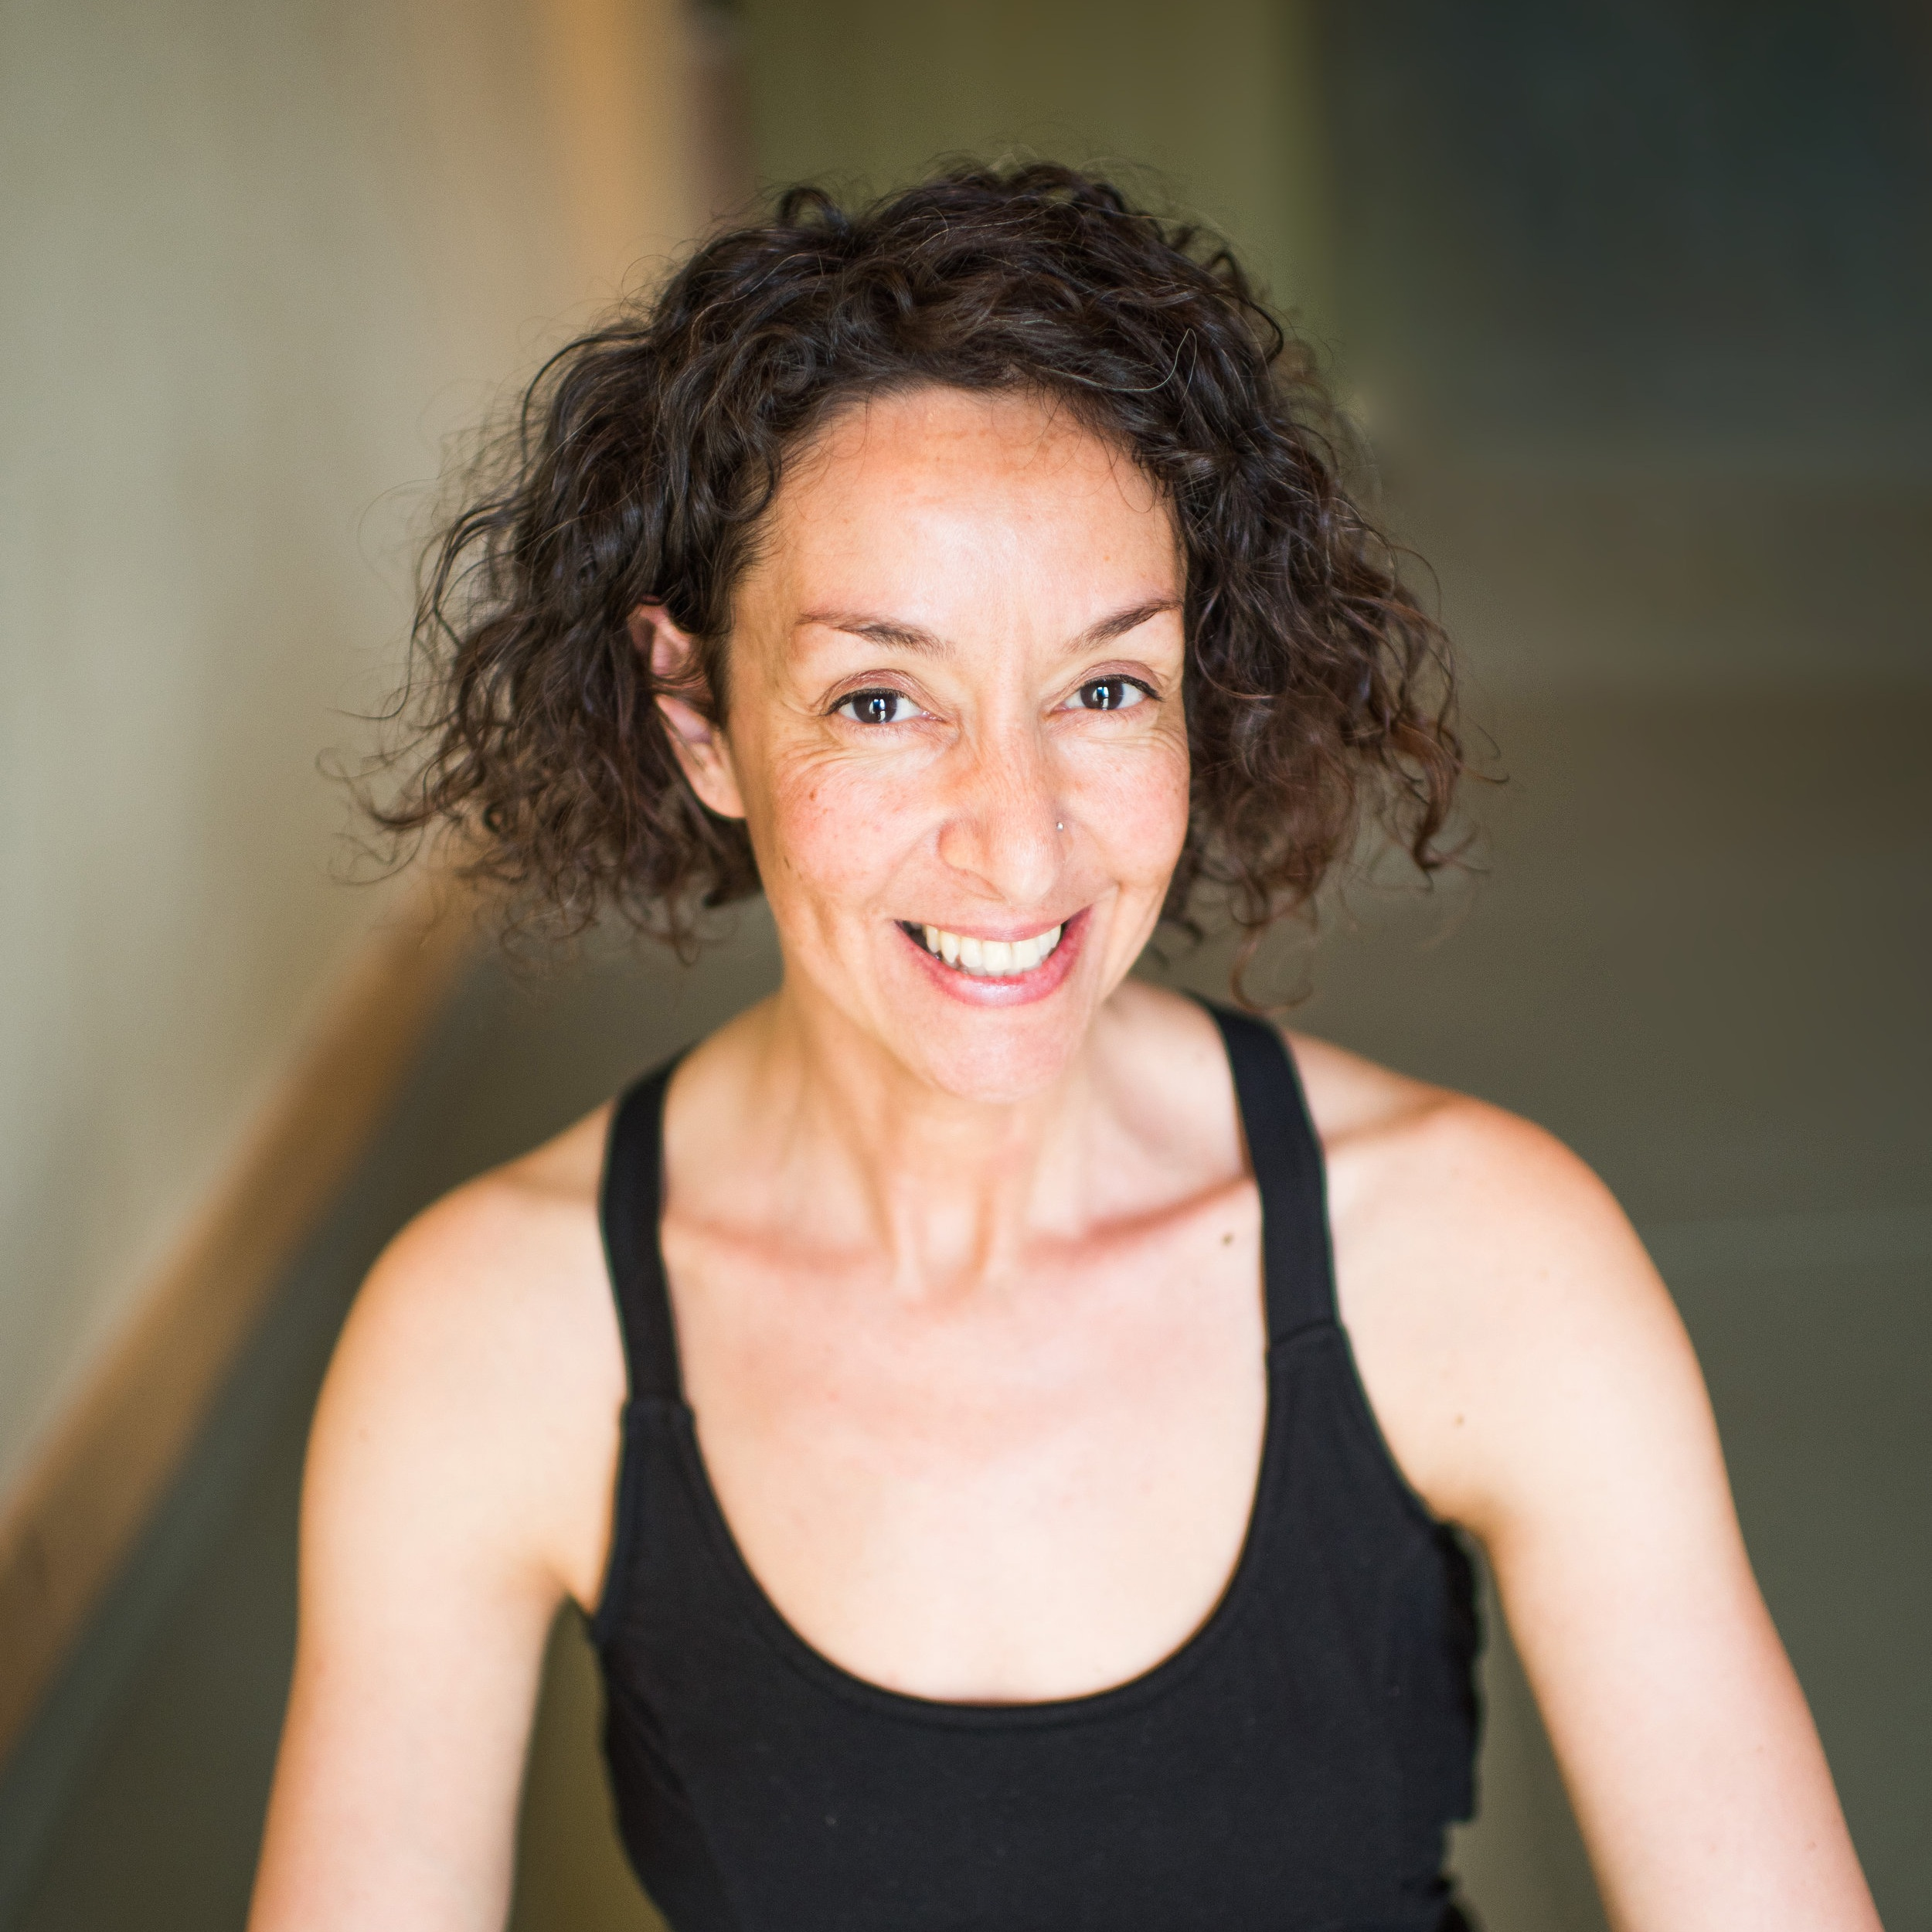 CARRIE GANZ - Specialities: Functional yoga, gentle, yoga for mobility, for chronic pain, yoga for back pain, yoga for strength, for stress relief, trauma survivors, pregnancy and post-partum, and for promoting a healthy lifestyle and balance.Office Hours are Mondays: 12pm-4pm; Fridays 10am-2pm & by request